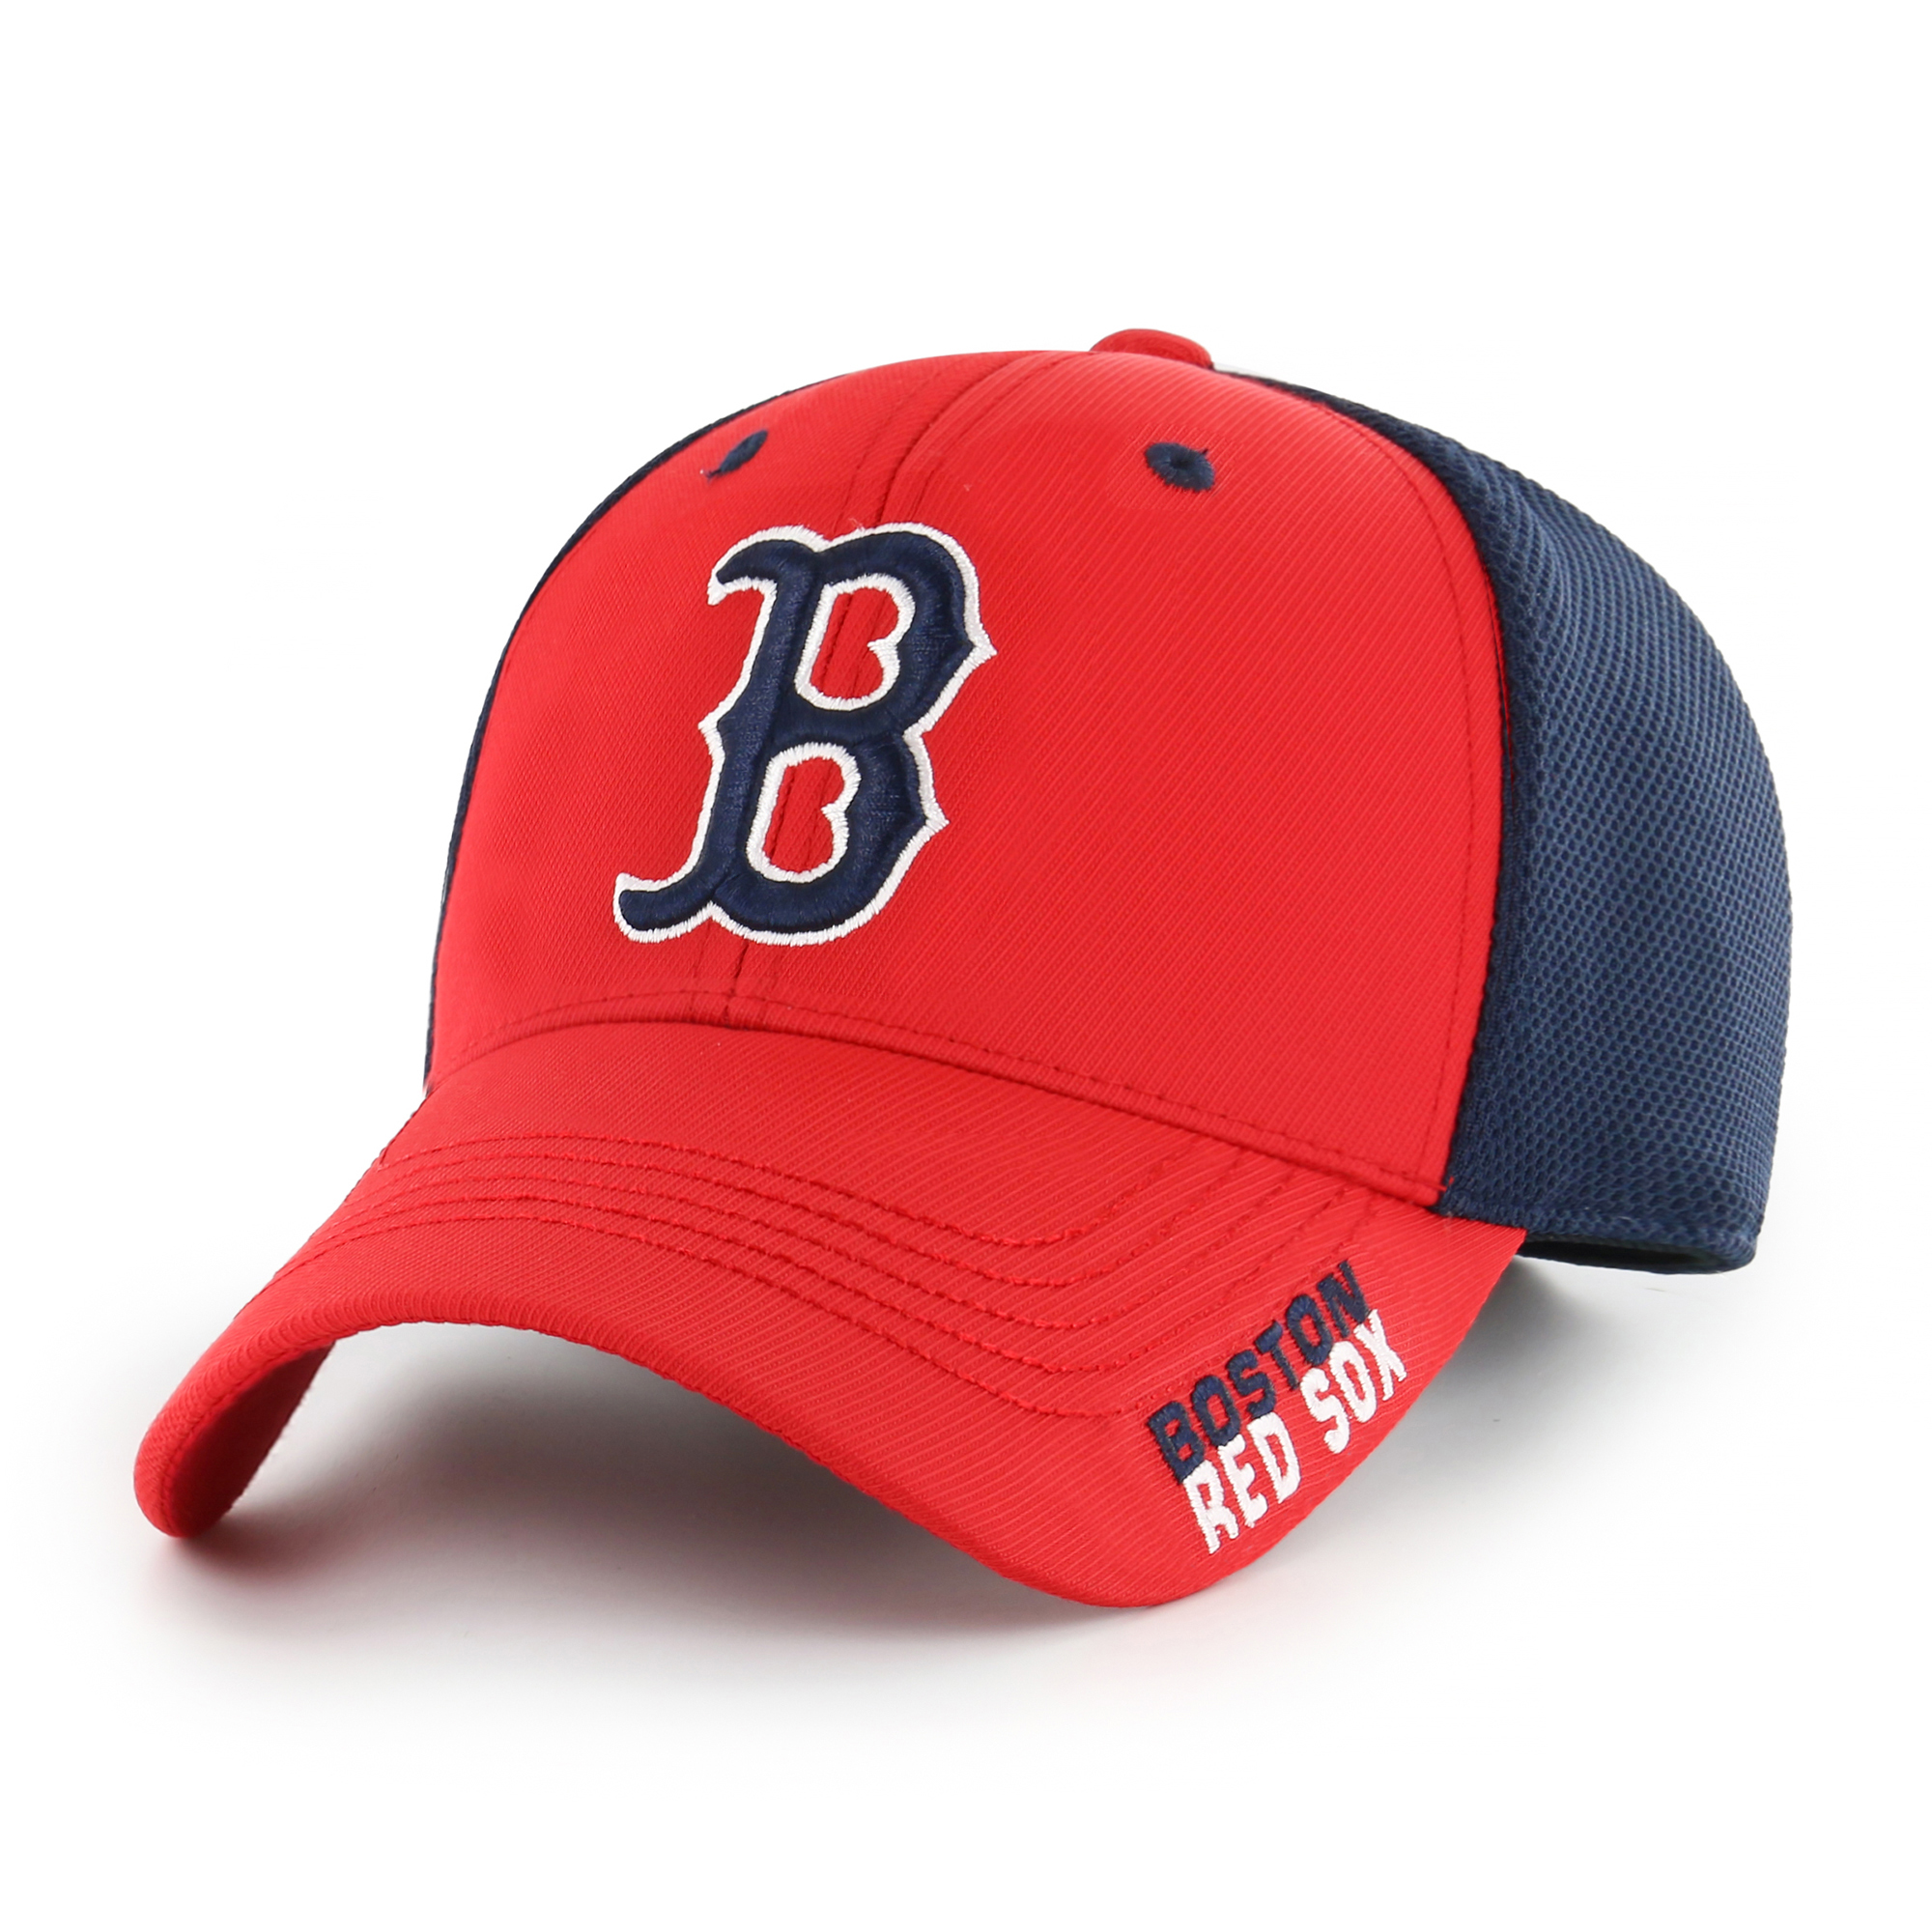 MLB Boston Red Sox Completion Adjustable Cap/Hat by Fan Favorite